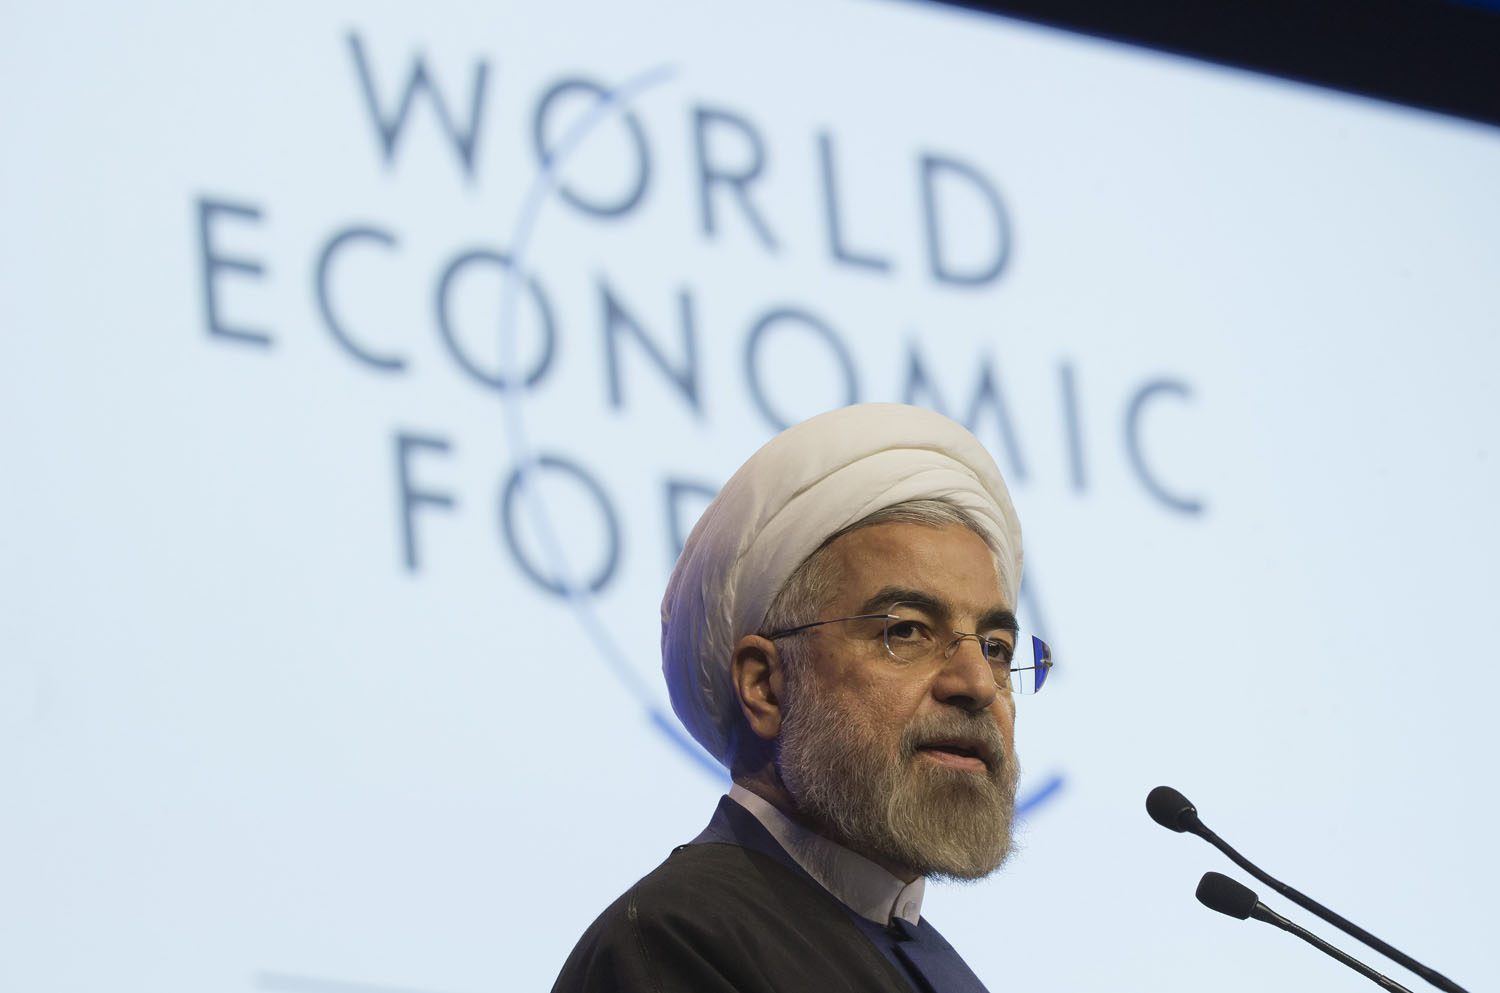 Iranian President Hassan Rouhani, speaks during a session of the World Economic Forum in Davos, Switzerland, Jan. 23, 2014. Iran's economy is showing signs of recovery after a breakthrough in the negotiations over the country's nuclear program has allowed an easing of some economic sanctions.